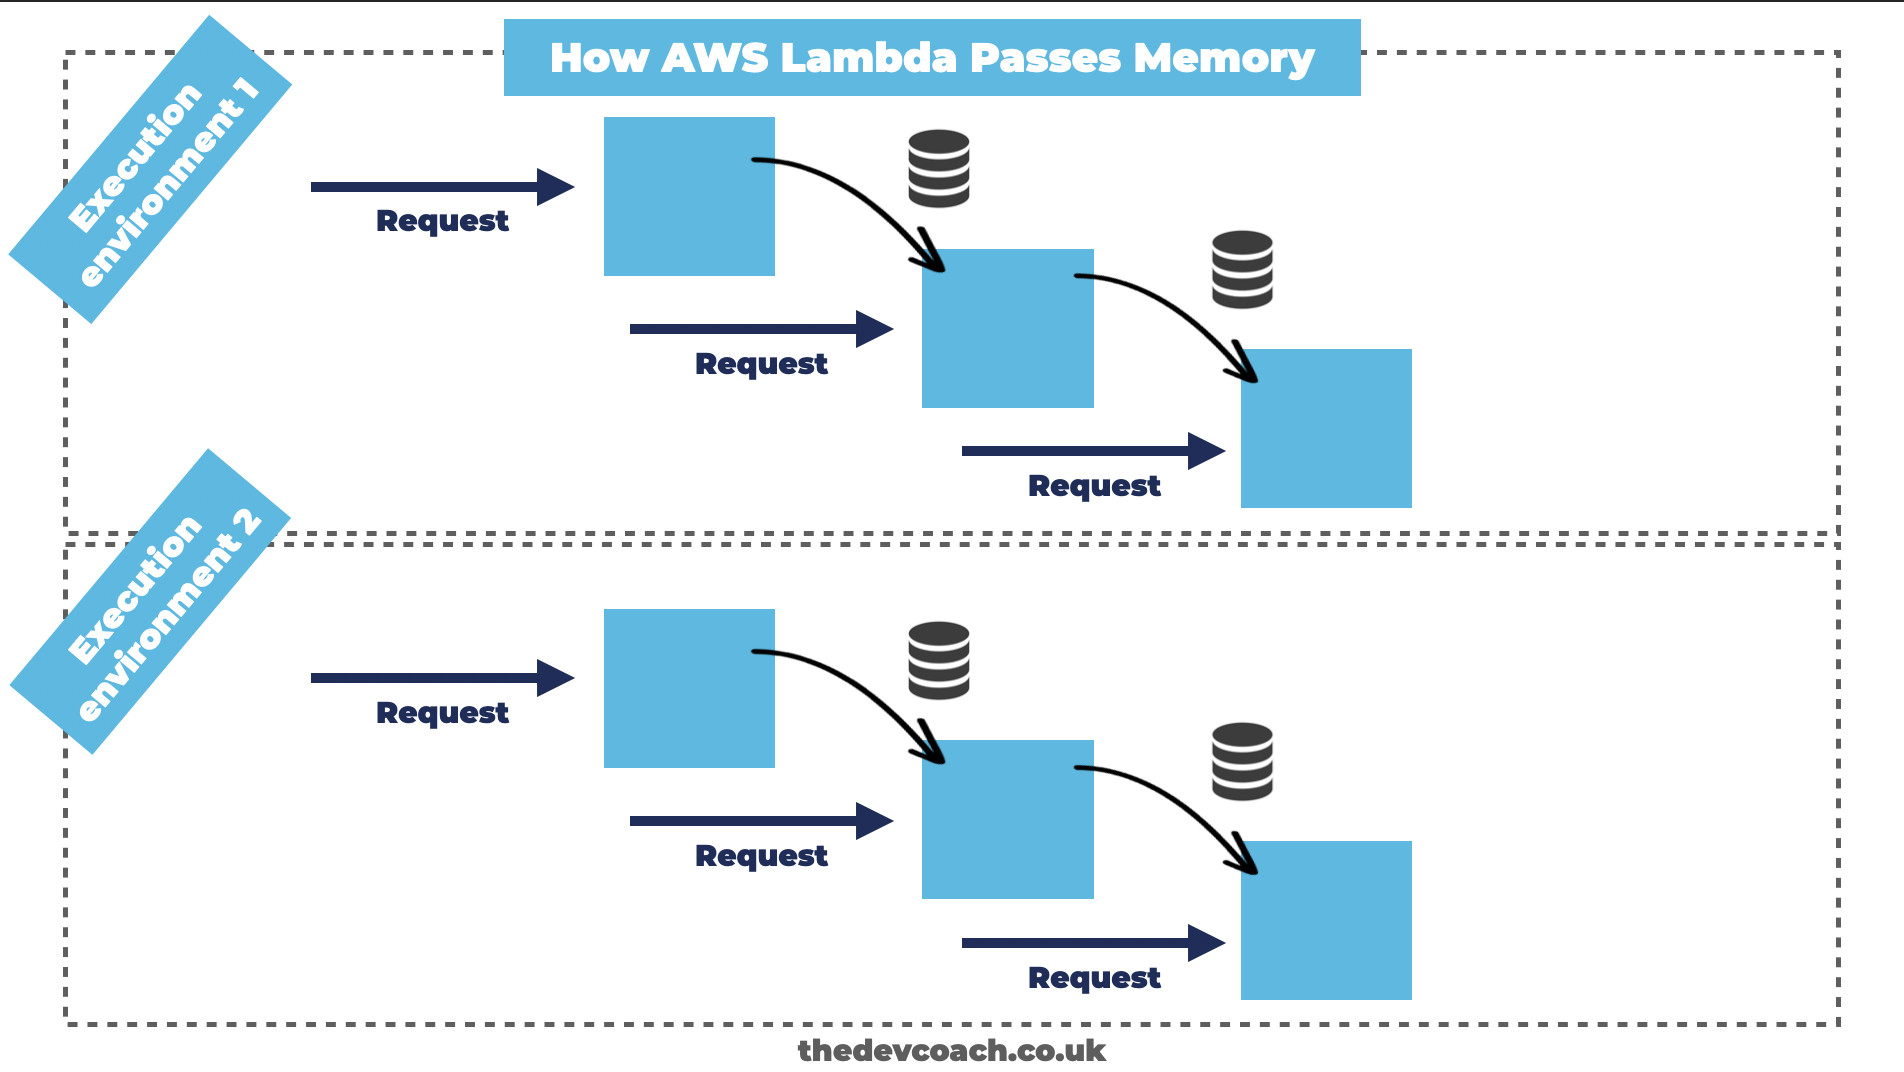 How AWS Lambda Passes Memory